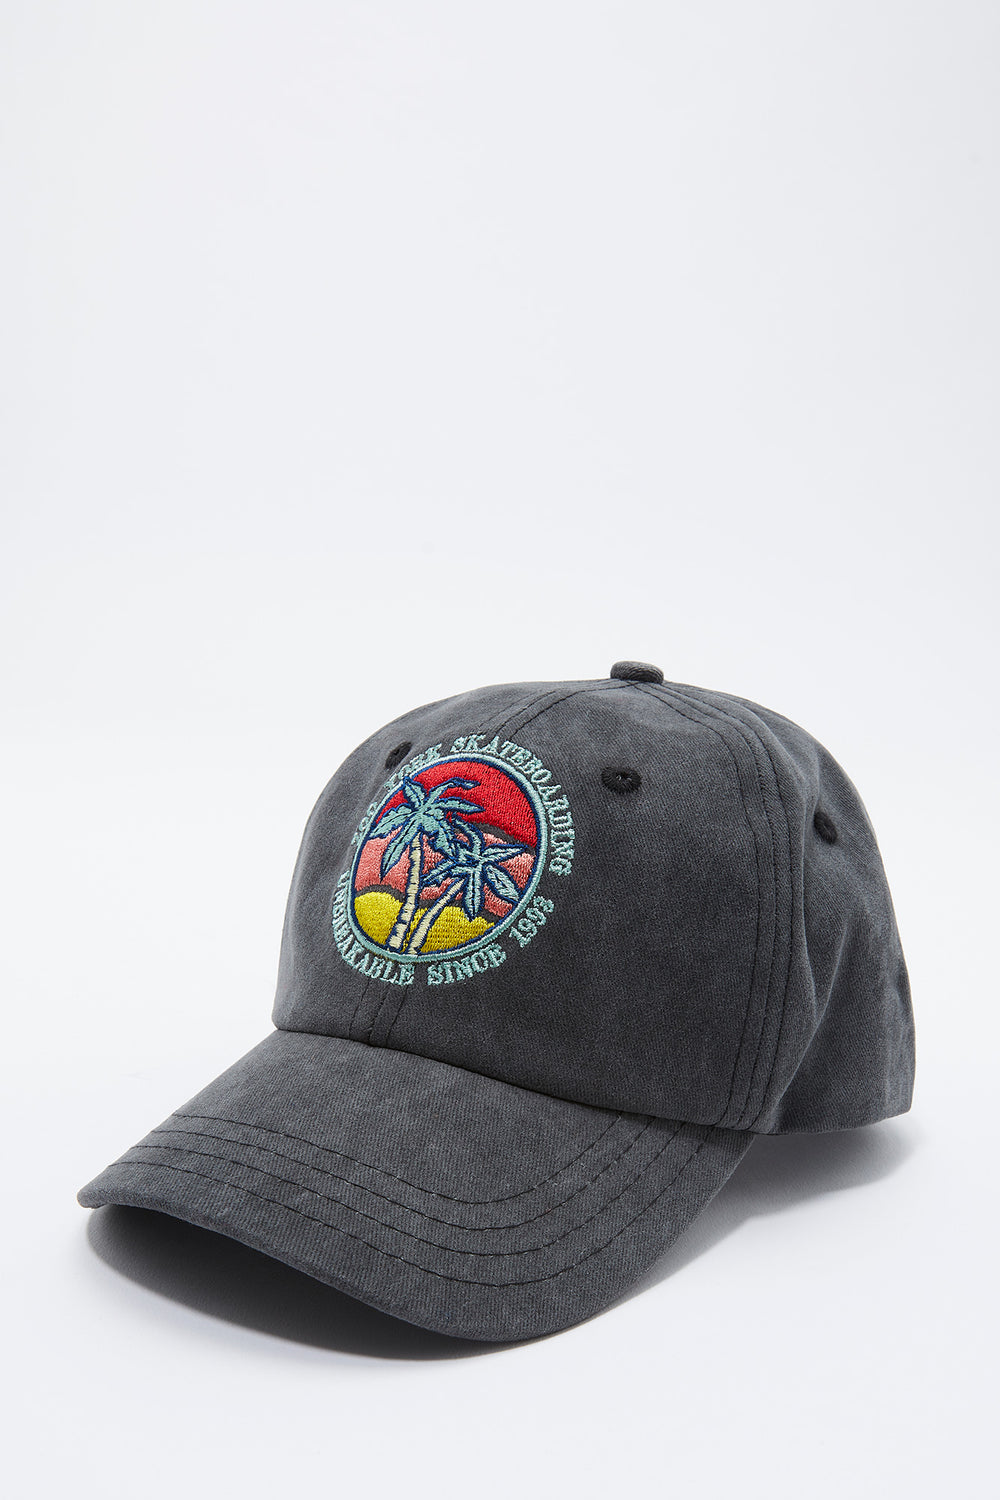 Zoo York Youth Sunset Logo Hat Charcoal